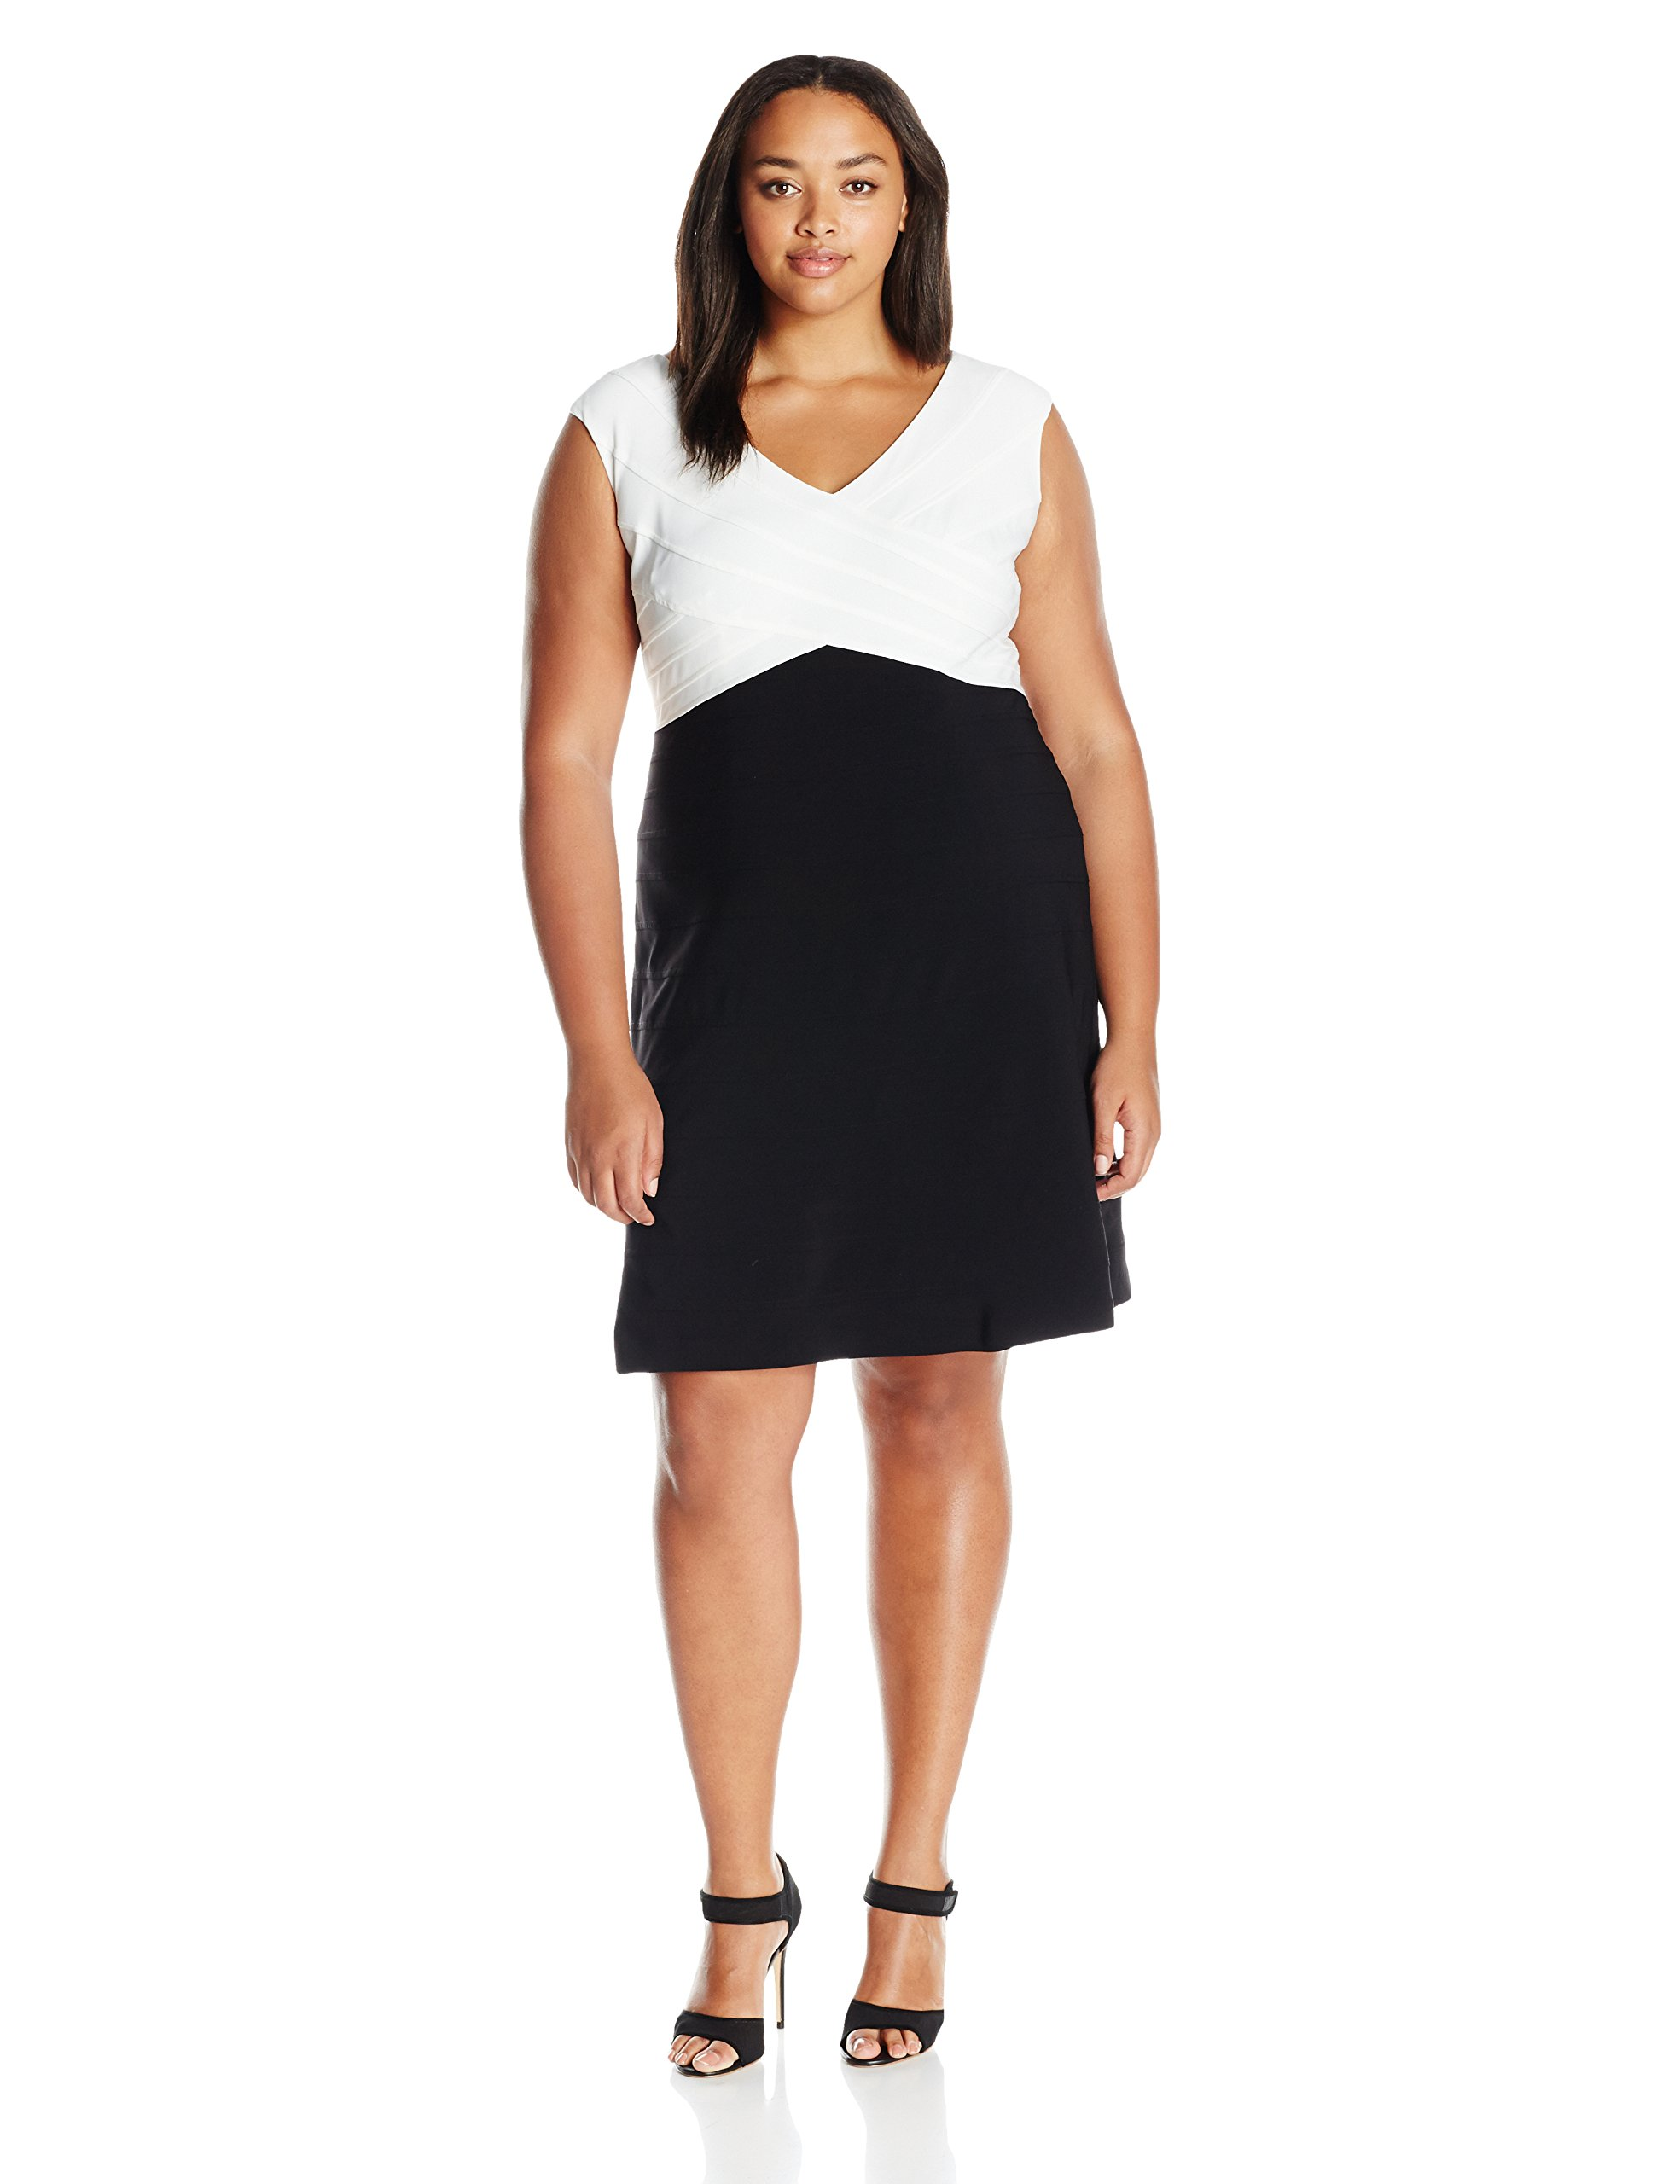 Adrianna Papell Women's Plus Size Criss Cross Baned Jersey Fit N Flare, Black/Ivory, 20W